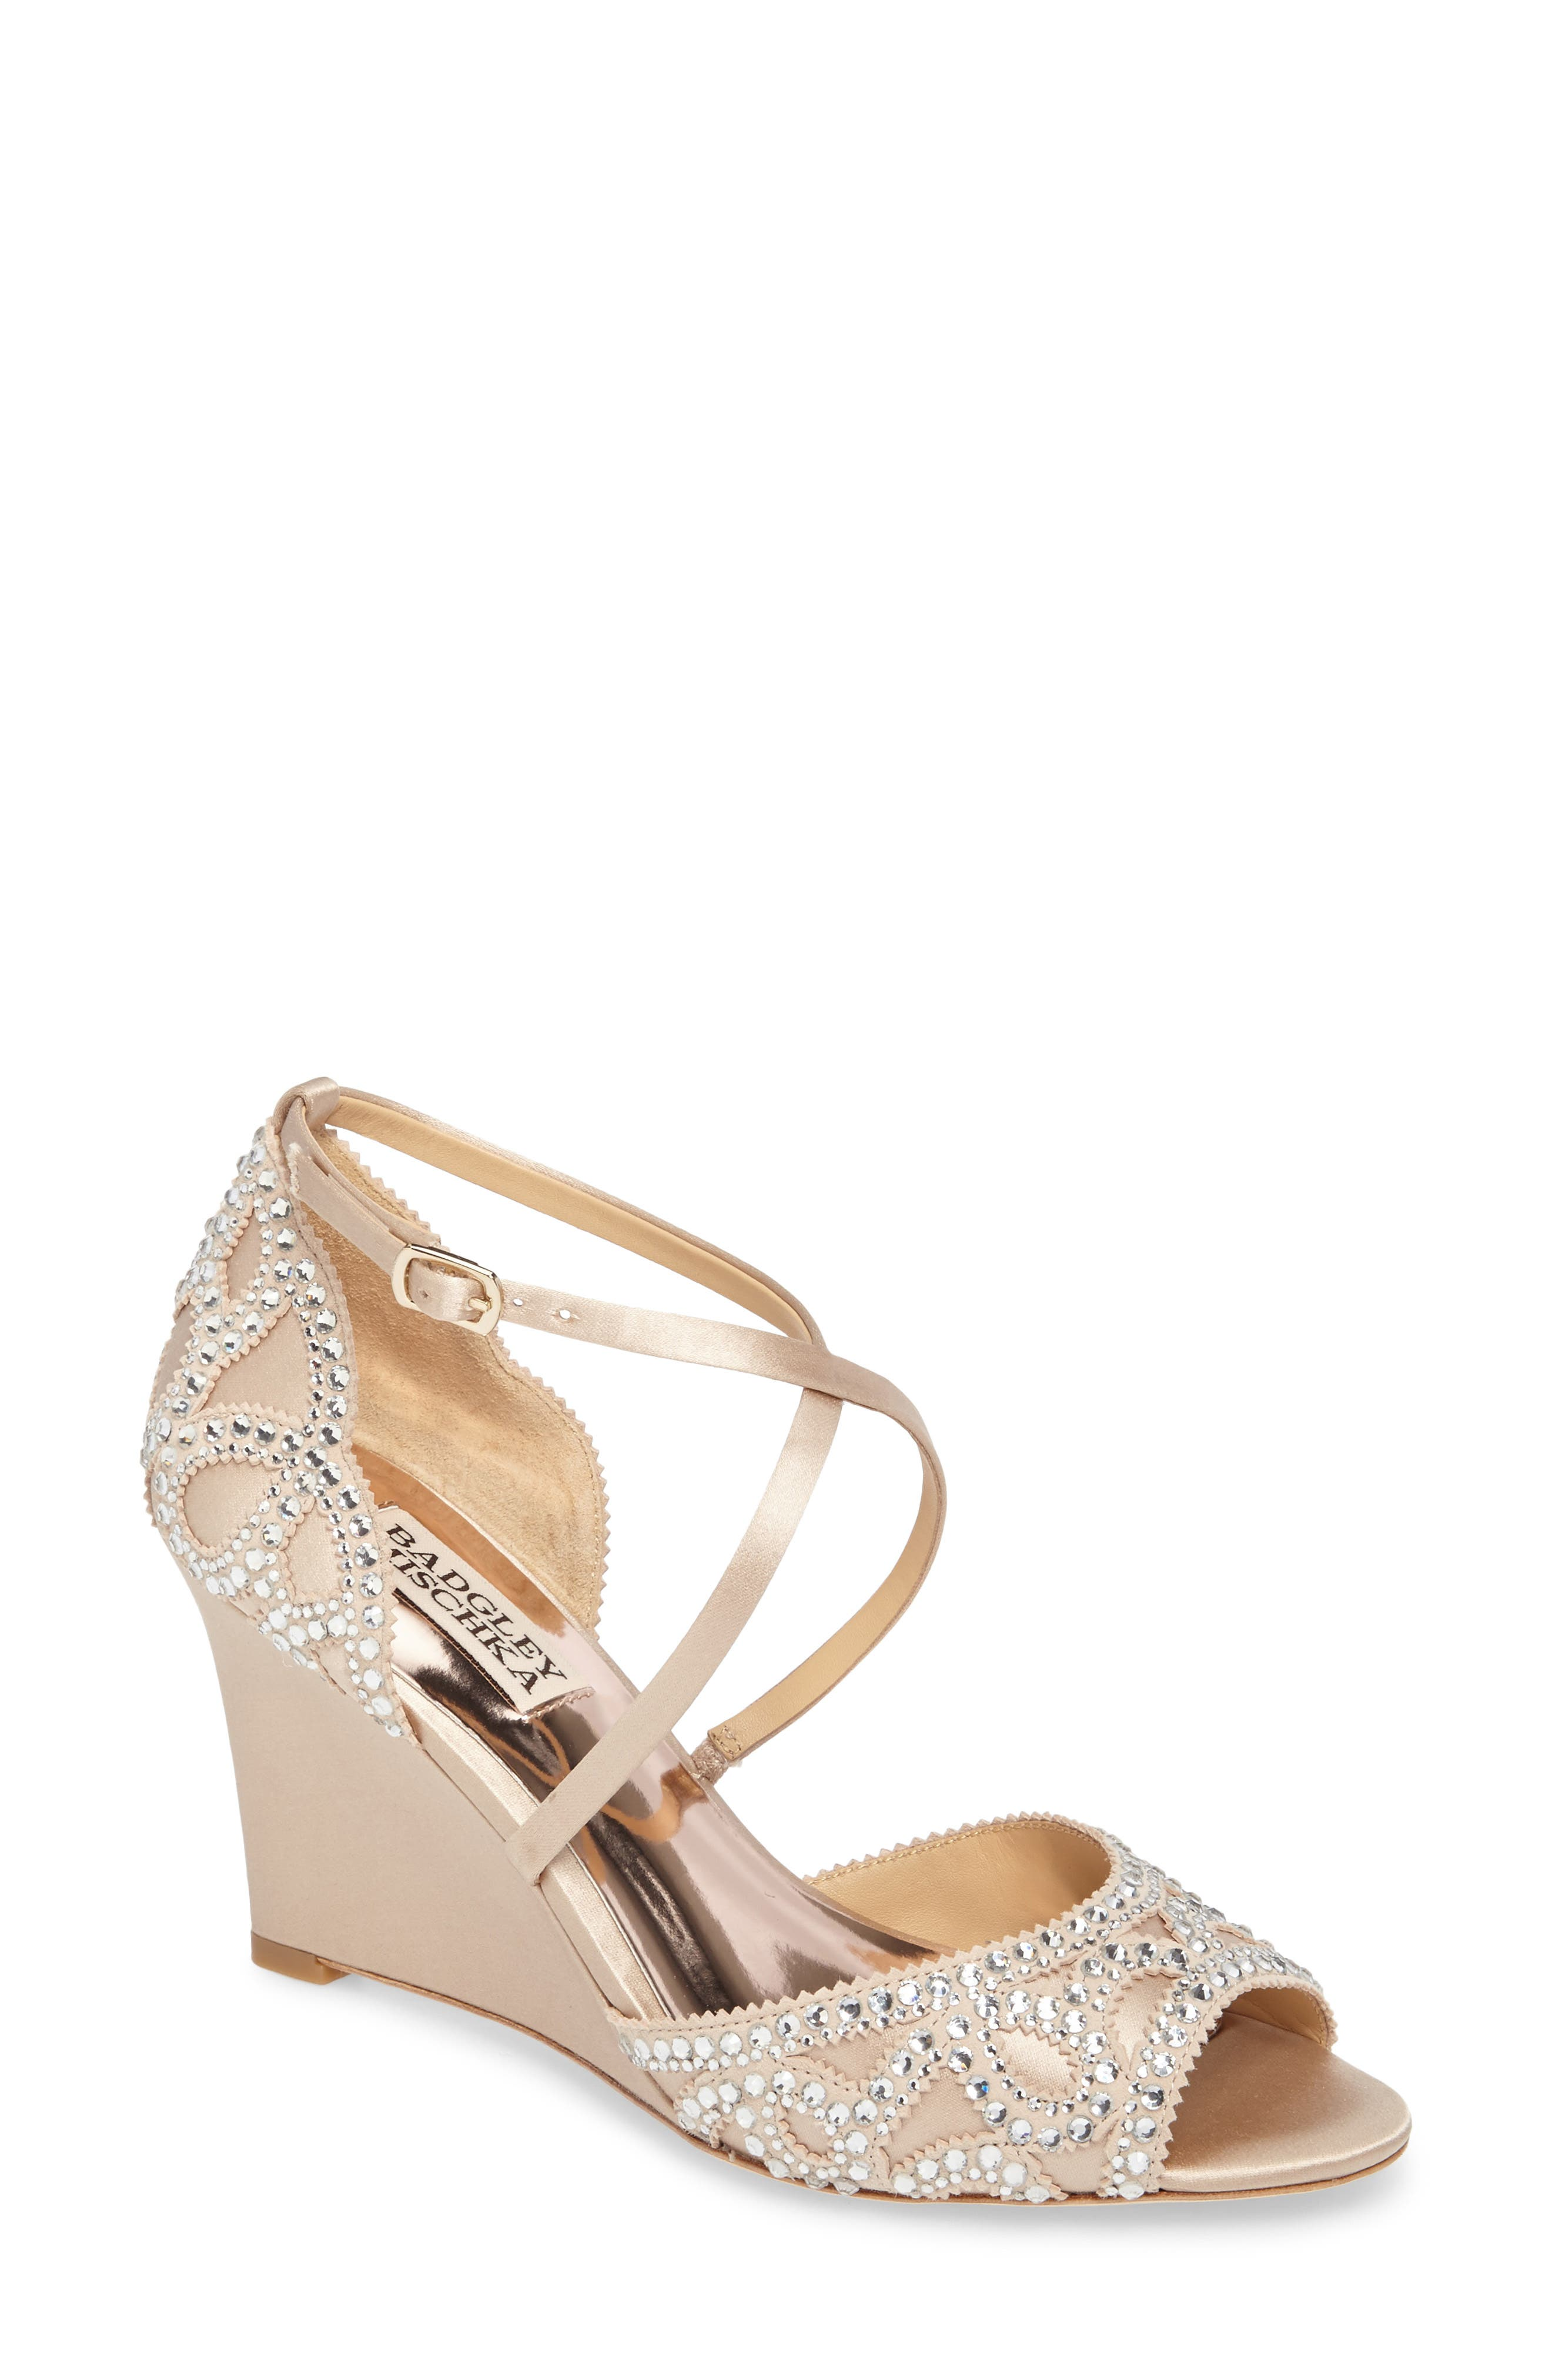 Winter Strappy Wedge Pump,                             Main thumbnail 1, color,                             Nude Satin